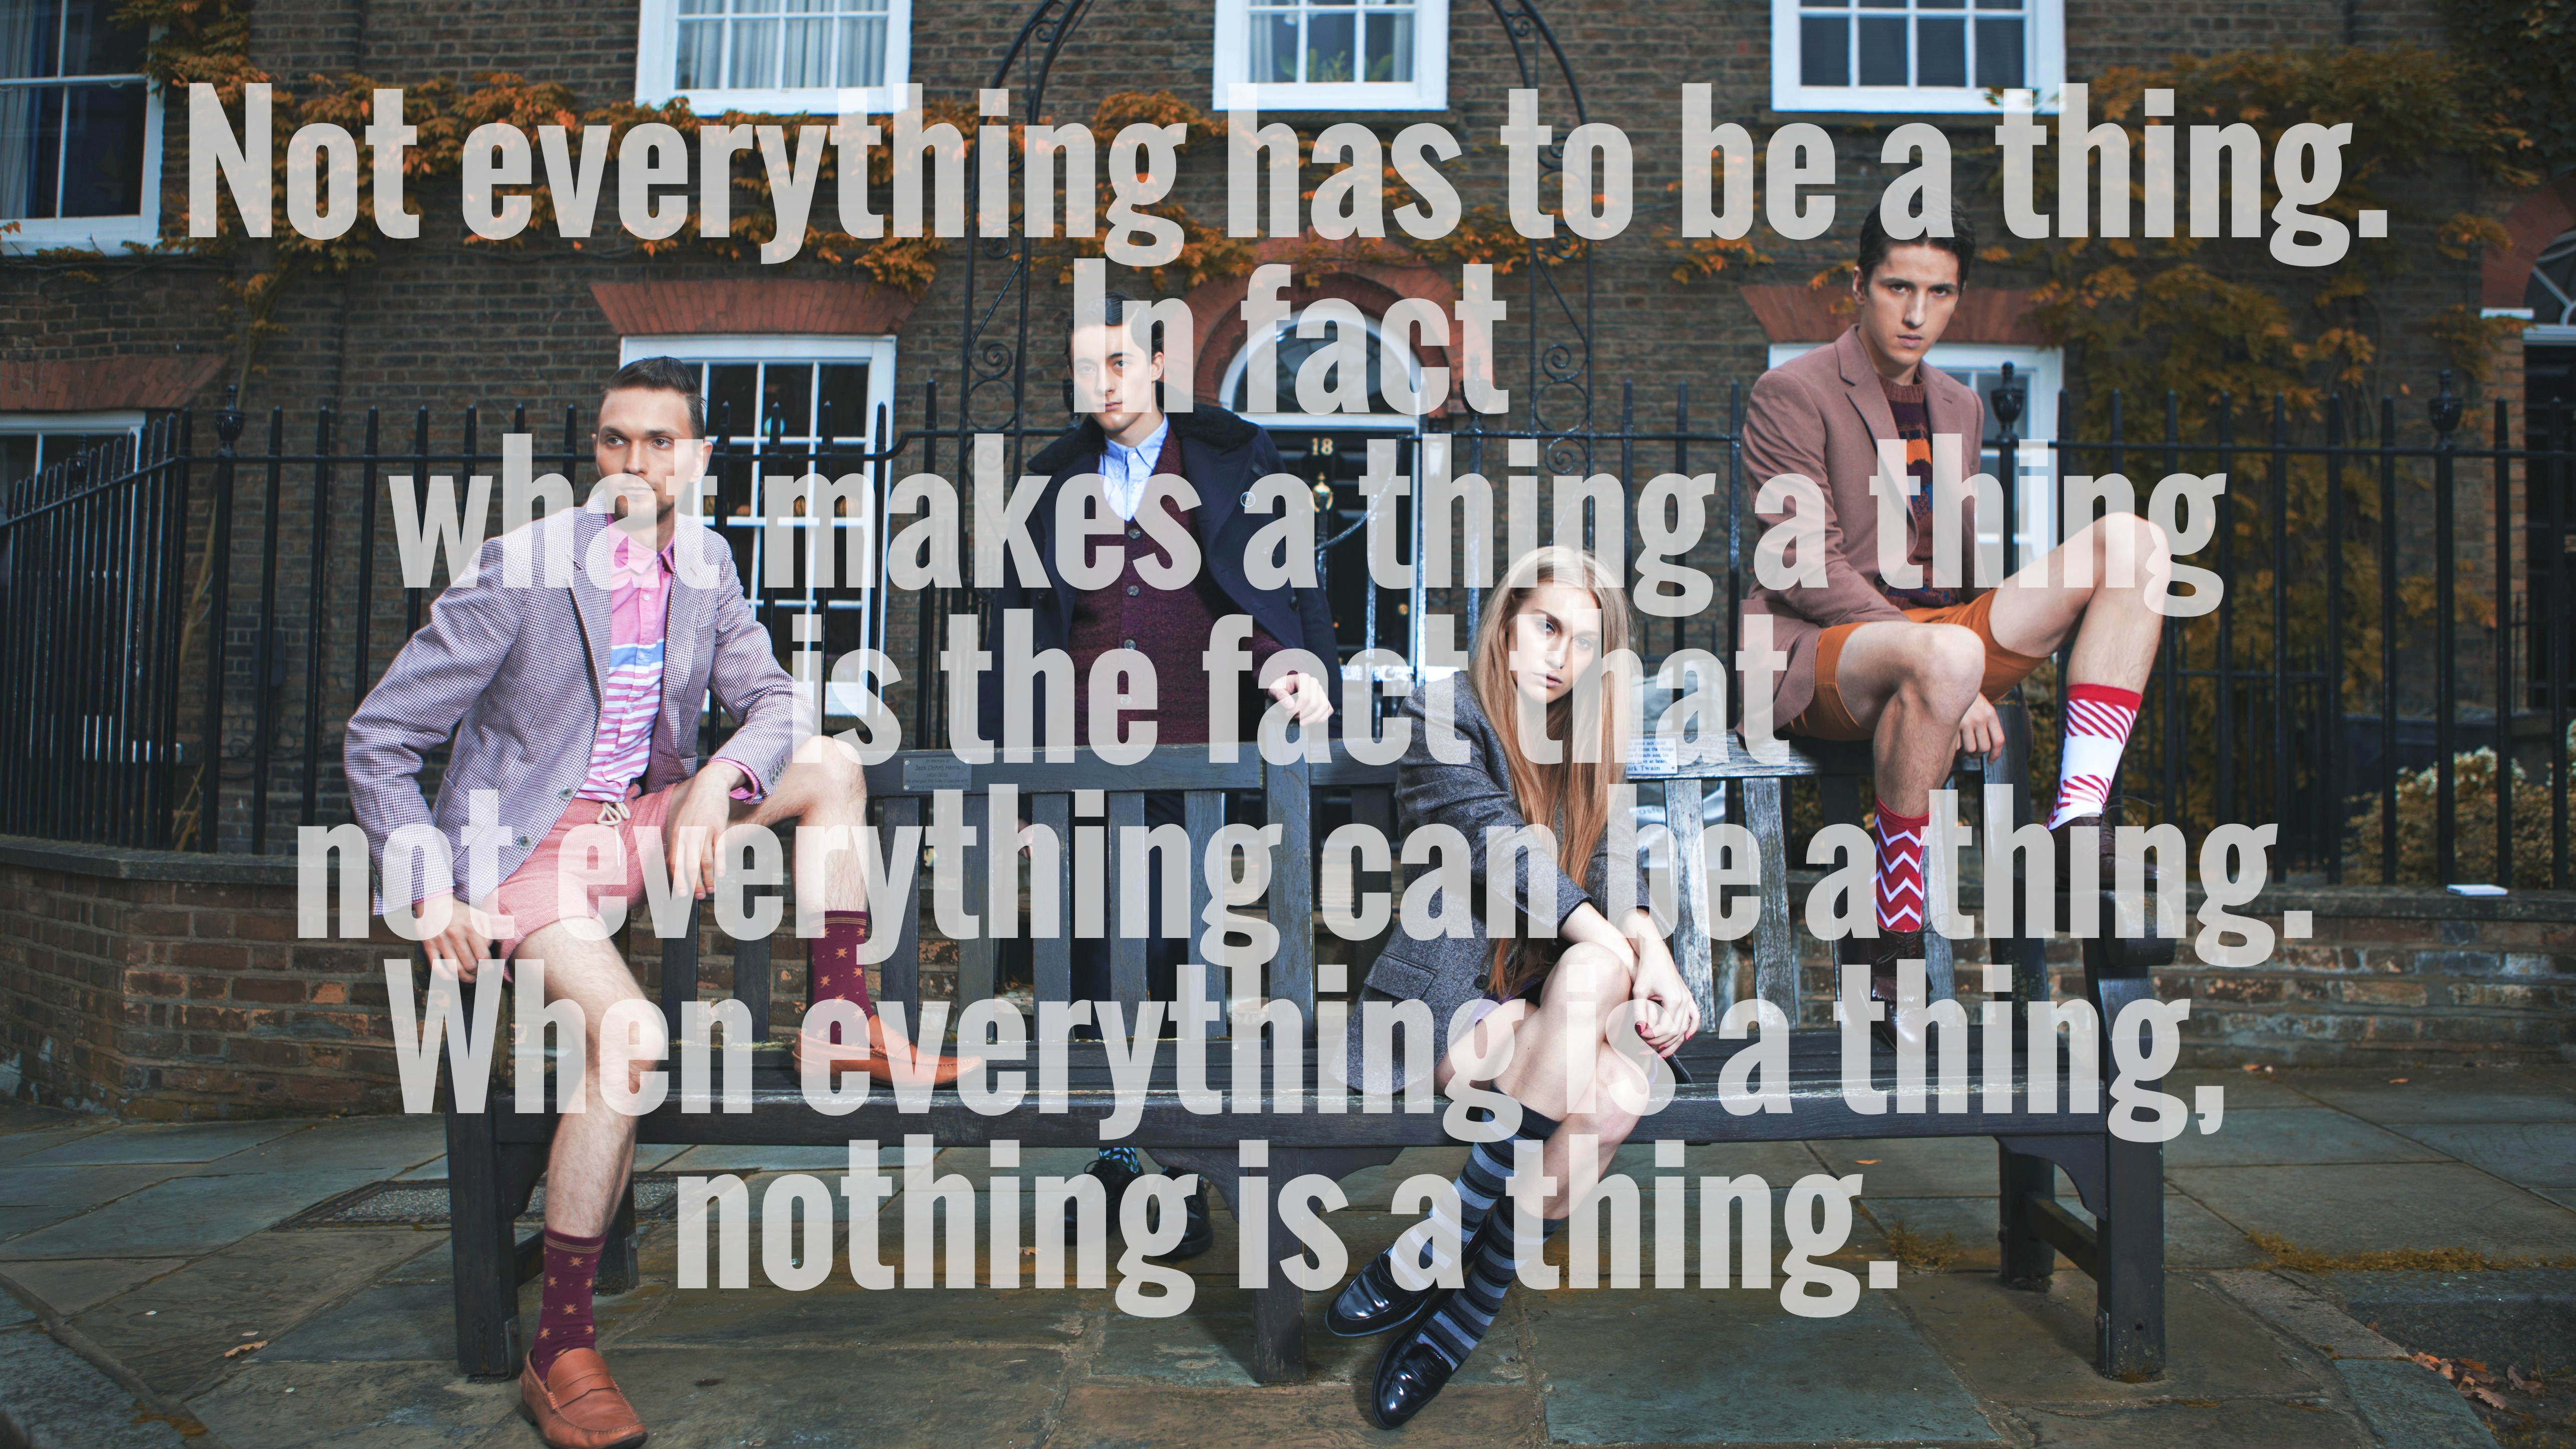 Not everything has to be a thing